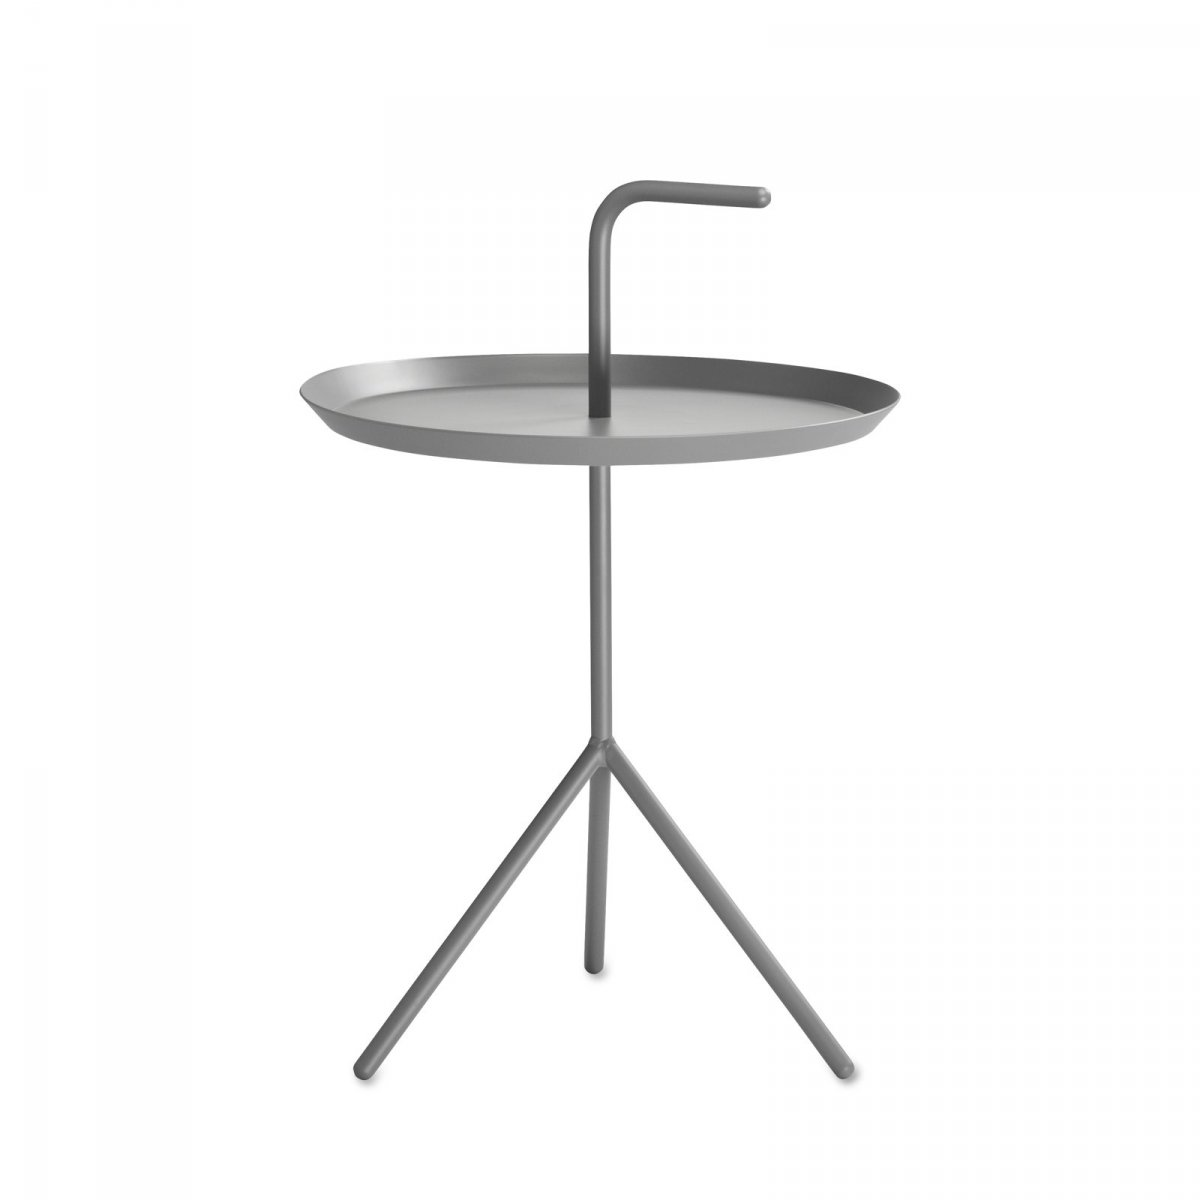 DLM side table, gray.